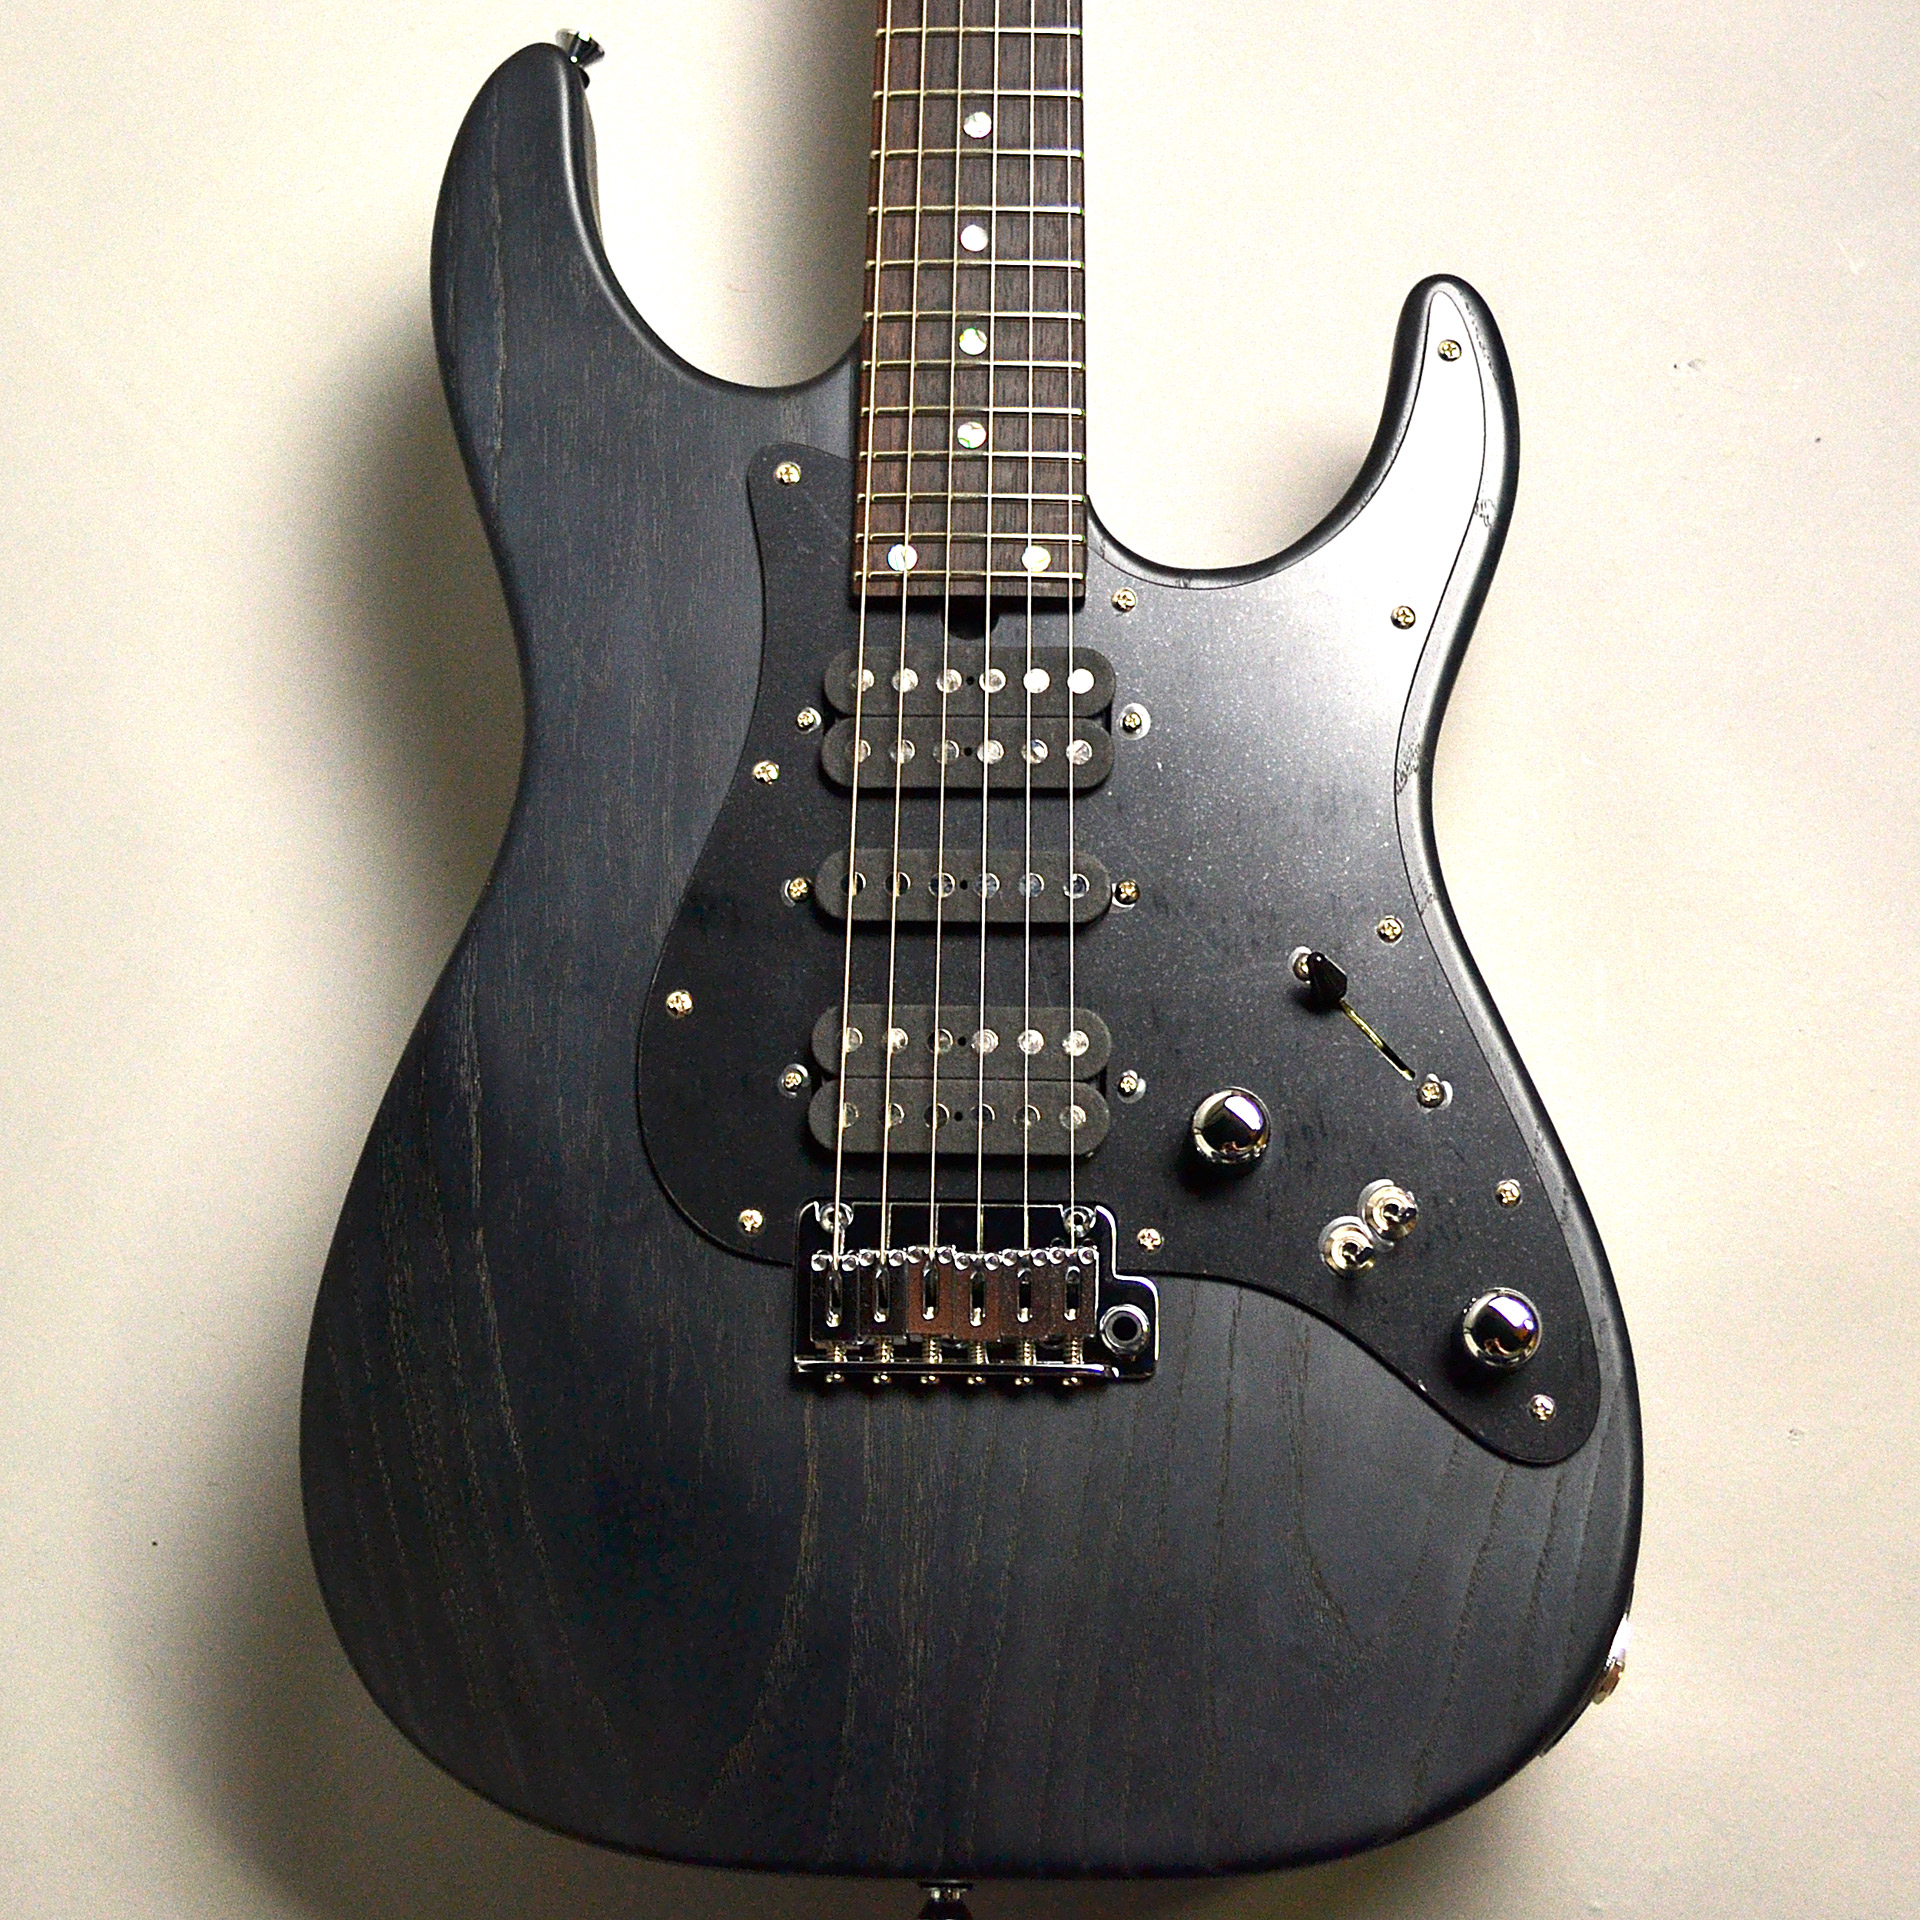 DST24 Solid AShのケース・その他画像